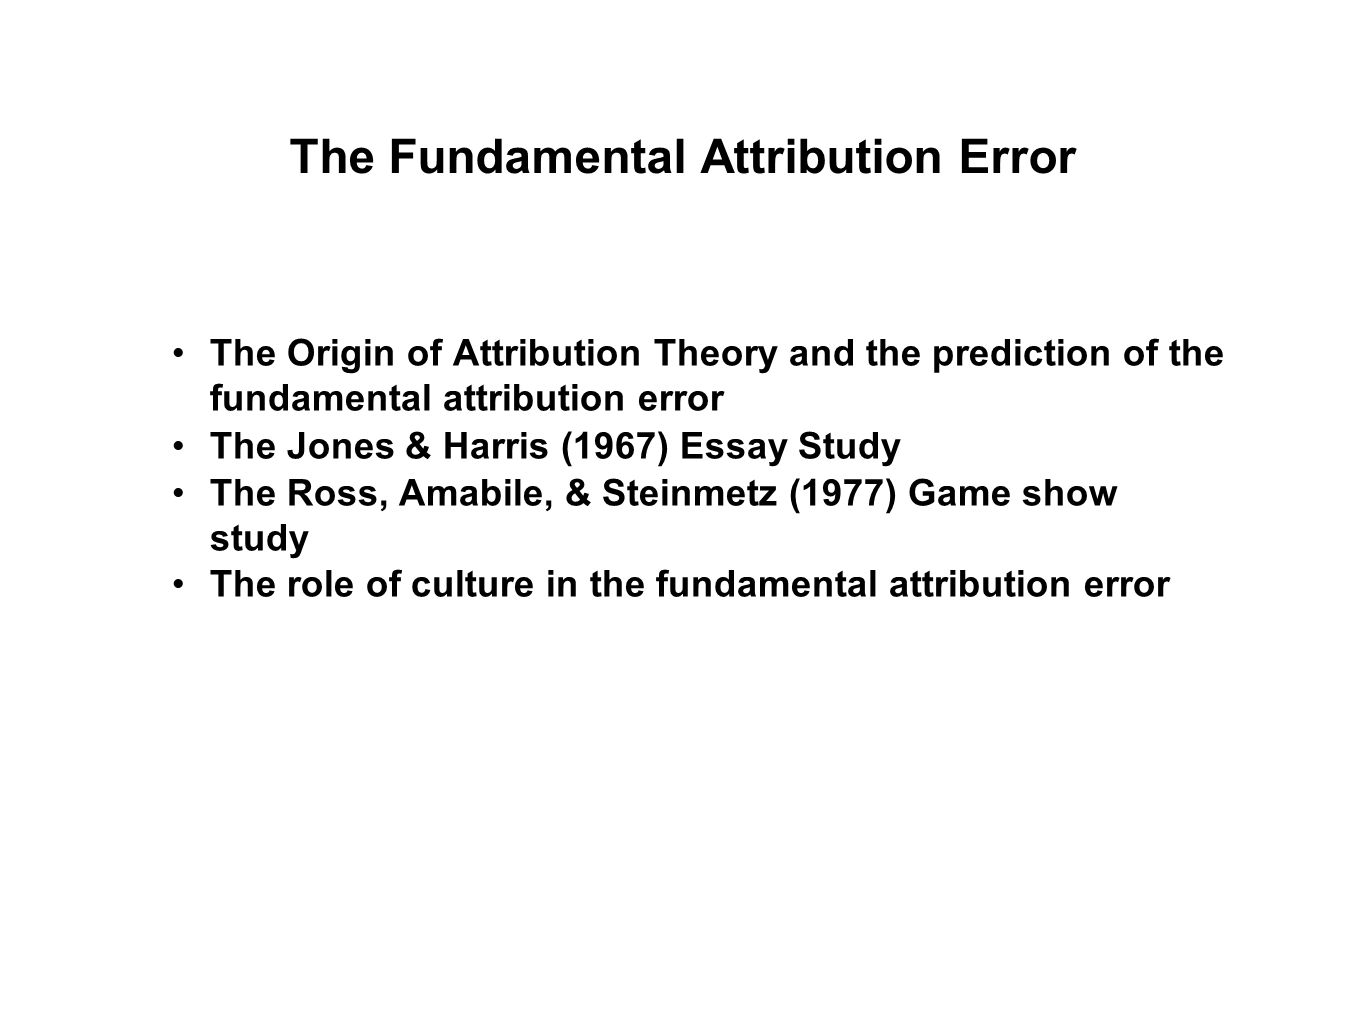 The Origin of Attribution Theory and the prediction of the fundamental attribution error The Jones & Harris (1967) Essay Study The Ross, Amabile, & Steinmetz (1977) Game show study The role of culture in the fundamental attribution error The Fundamental Attribution Error